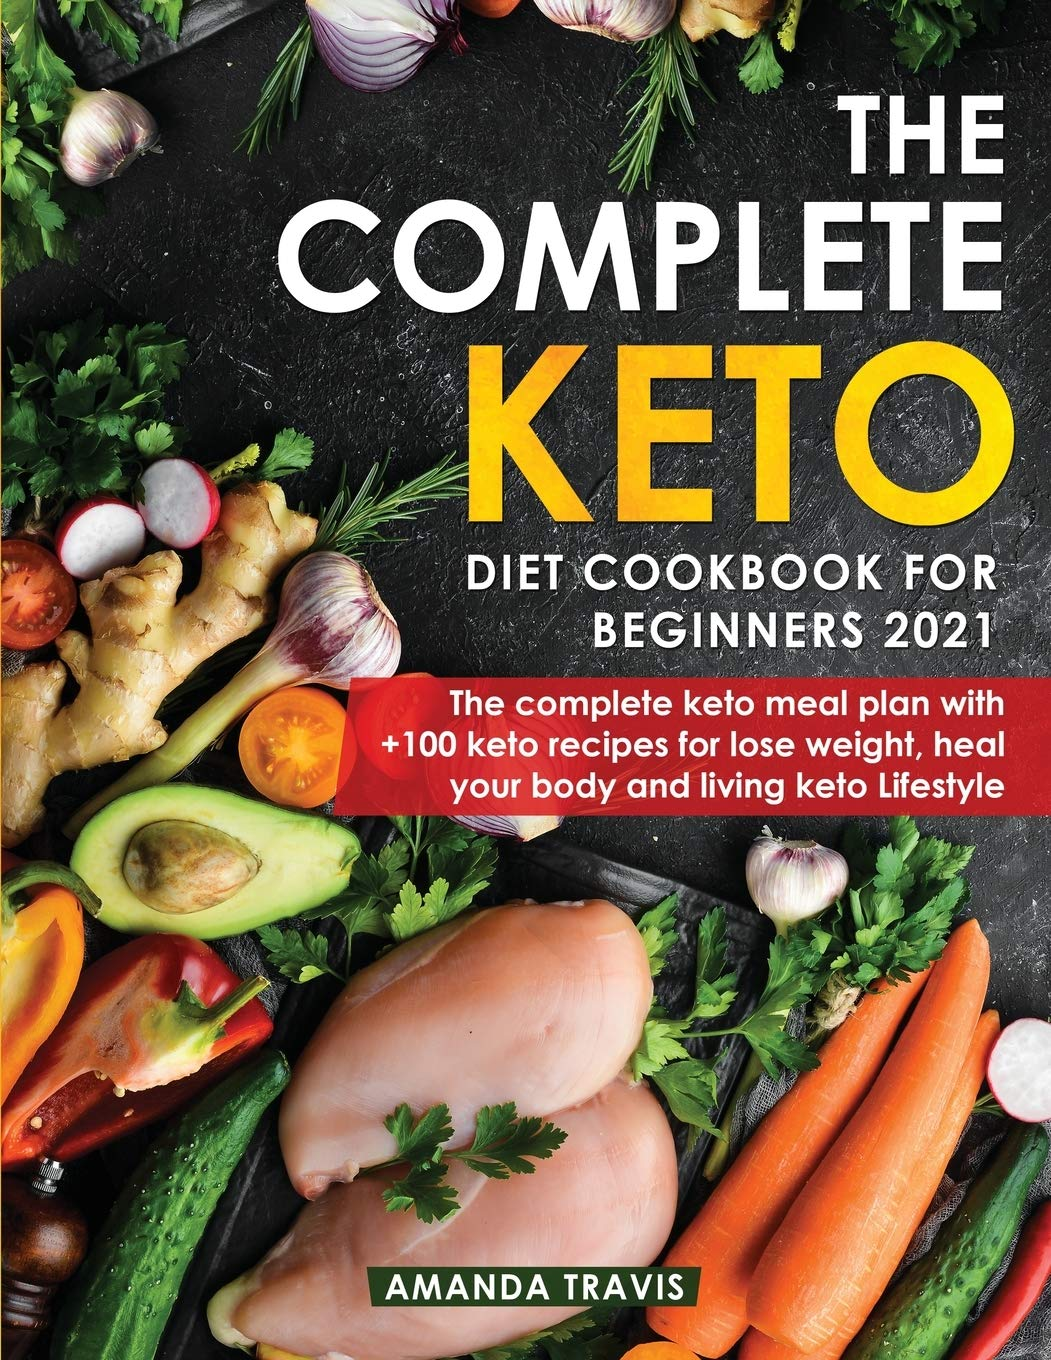 The Complete Keto Diet Cookbook for Beginners 2021: The complete keto meal plan with +100 keto recipes for lose weight, heal your body and living keto Lifestyle 1